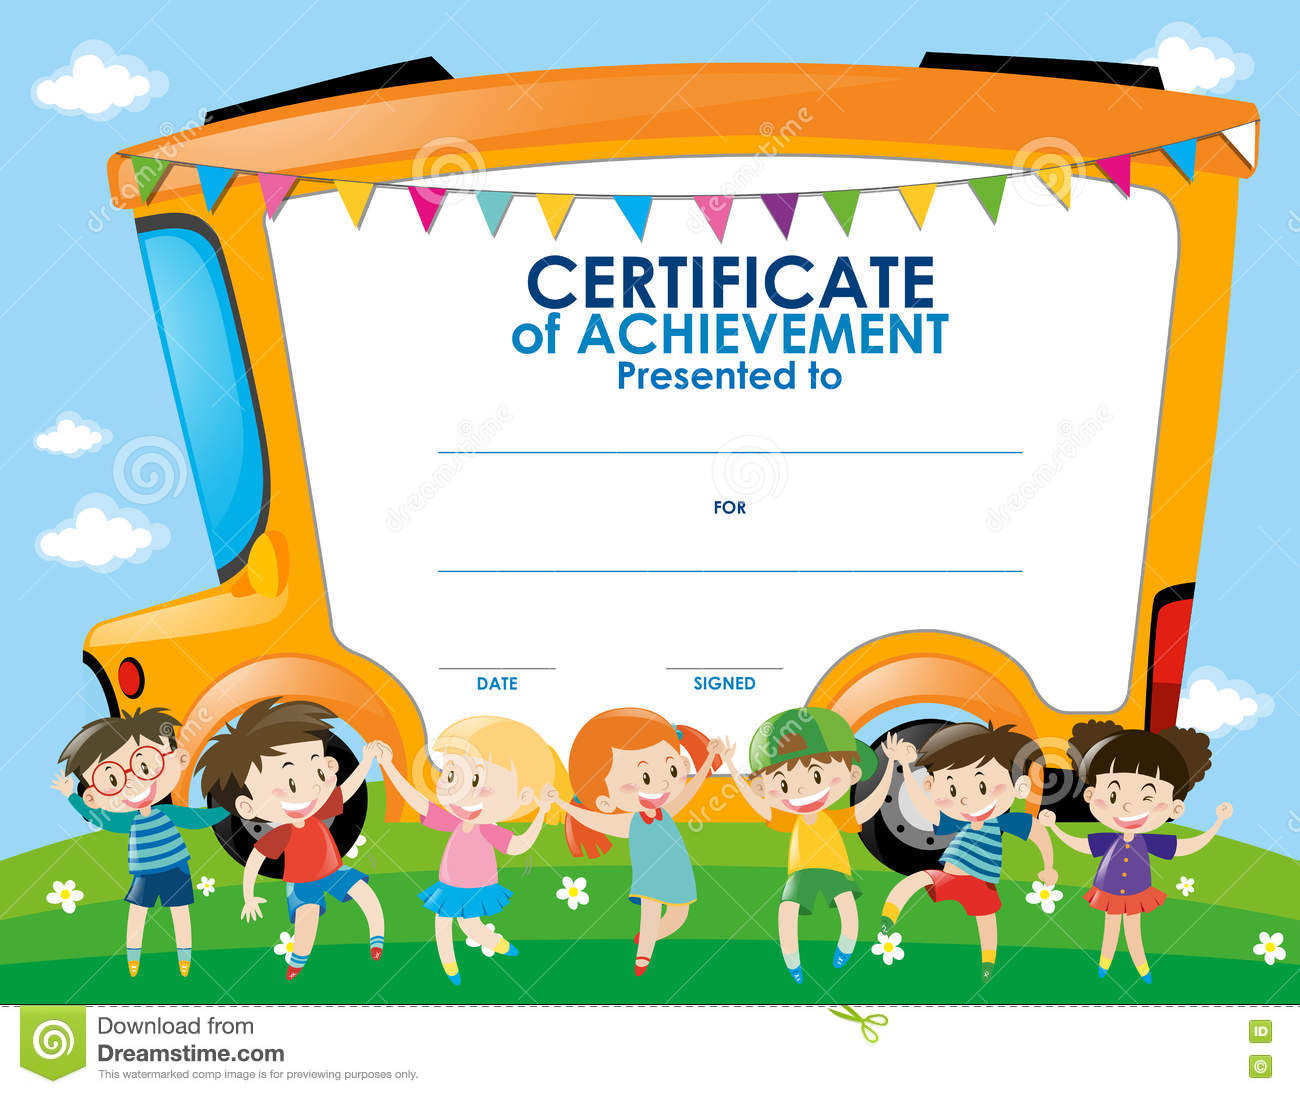 Toilet Design Certificate Template With Children And School Bus Stock